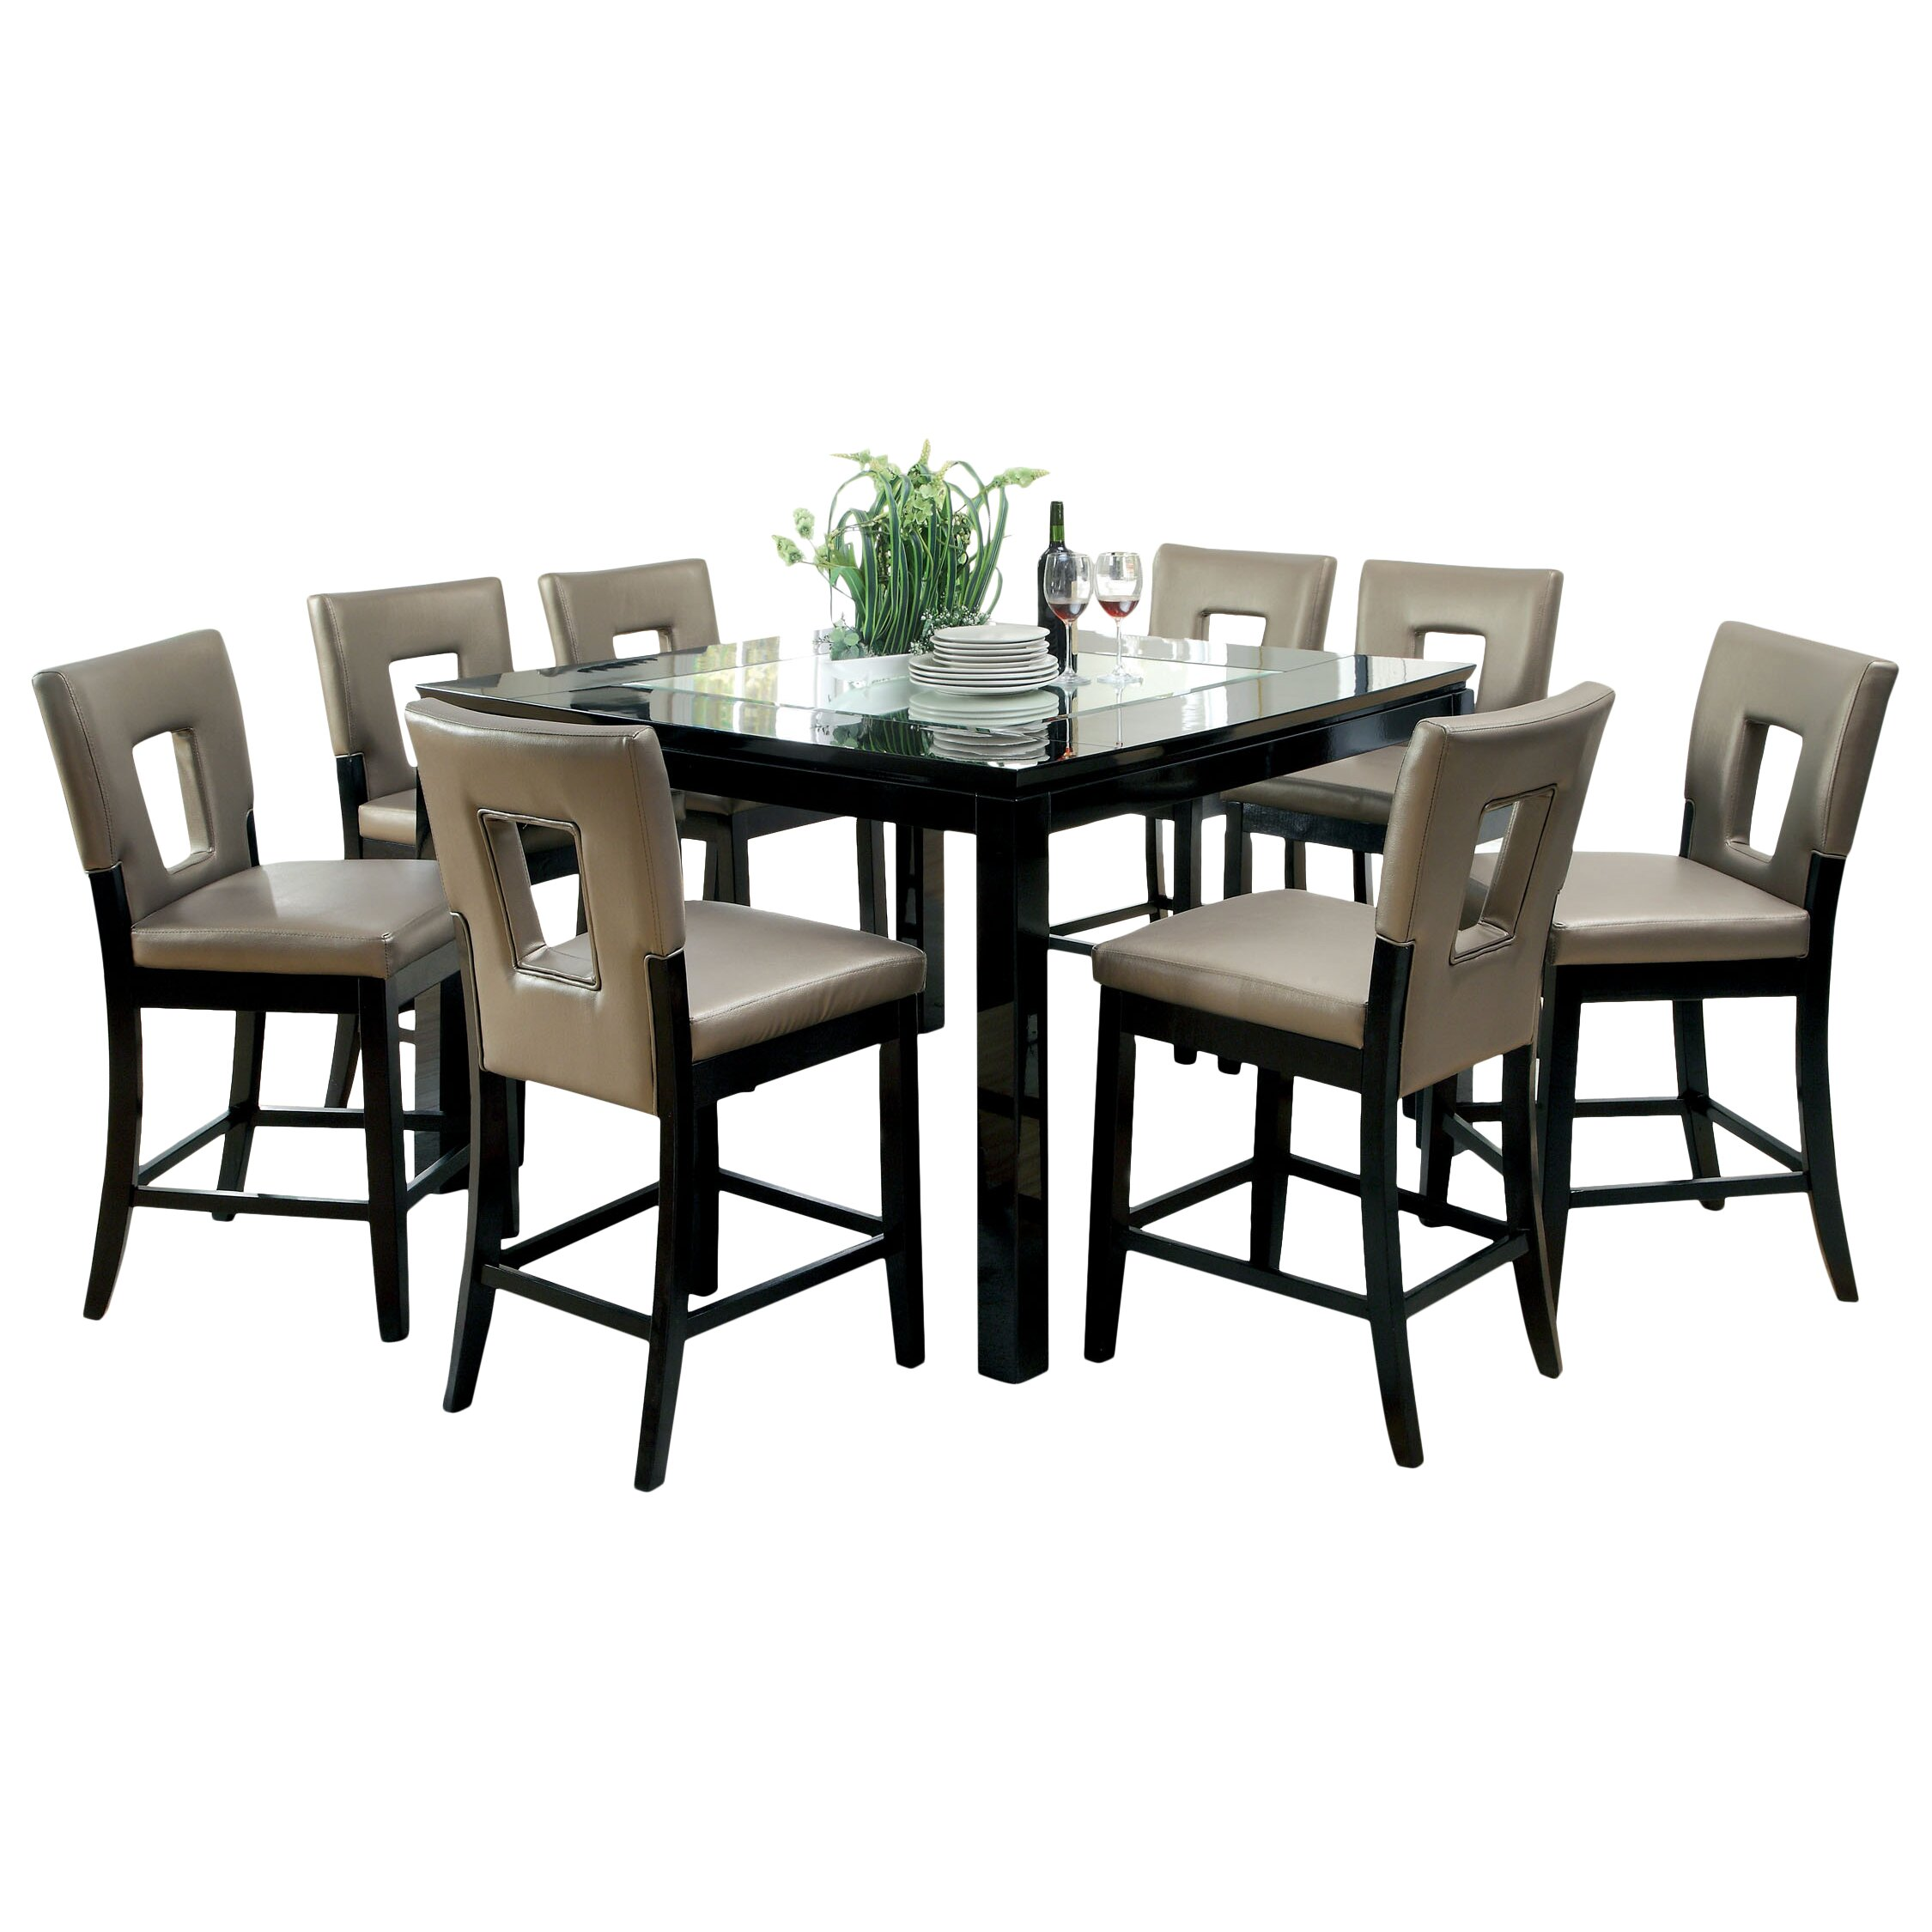 vanderbilte 3 piece counter height dining set reviews